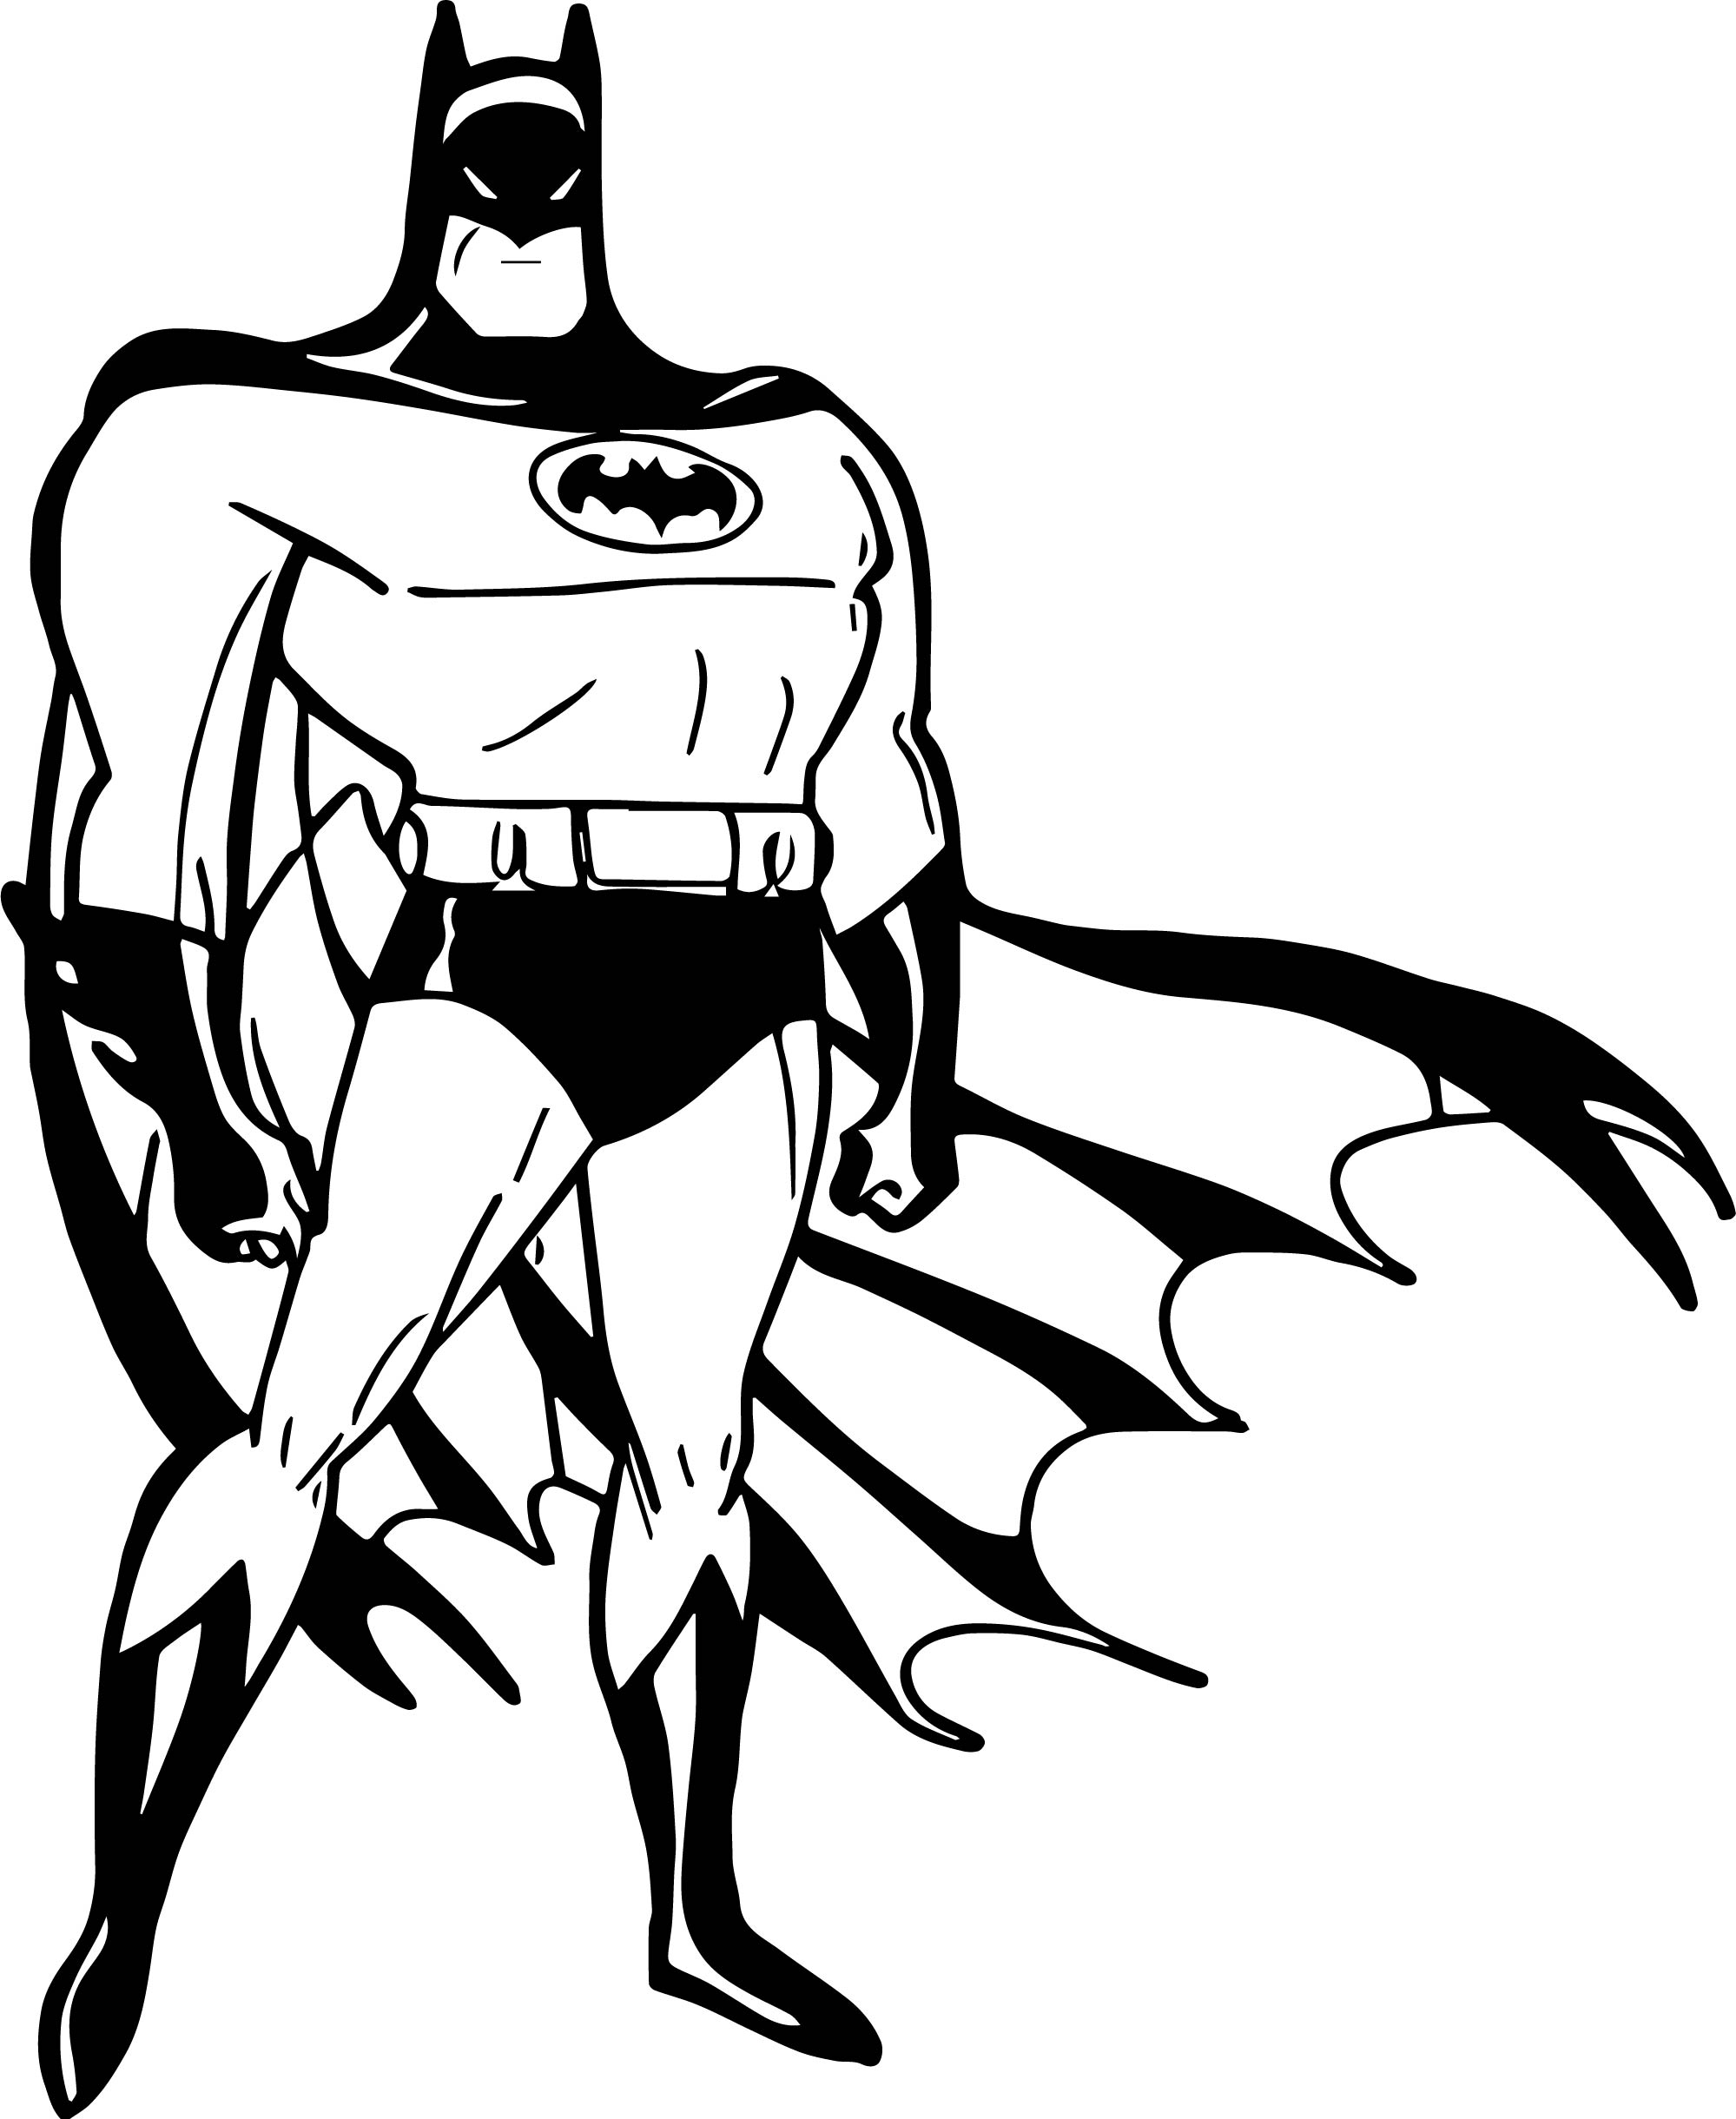 Batman Wind Pose Coloring Page